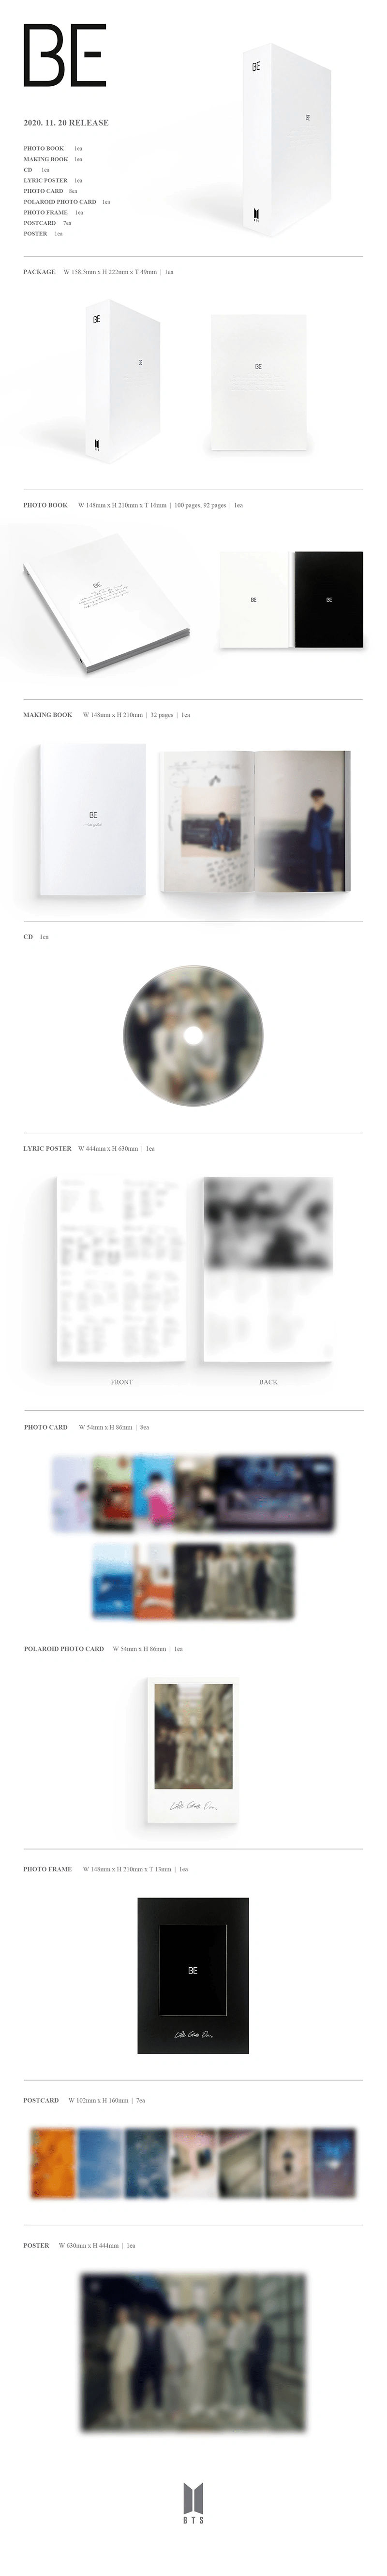 BTS Be Deluxe Edition album packaging.png